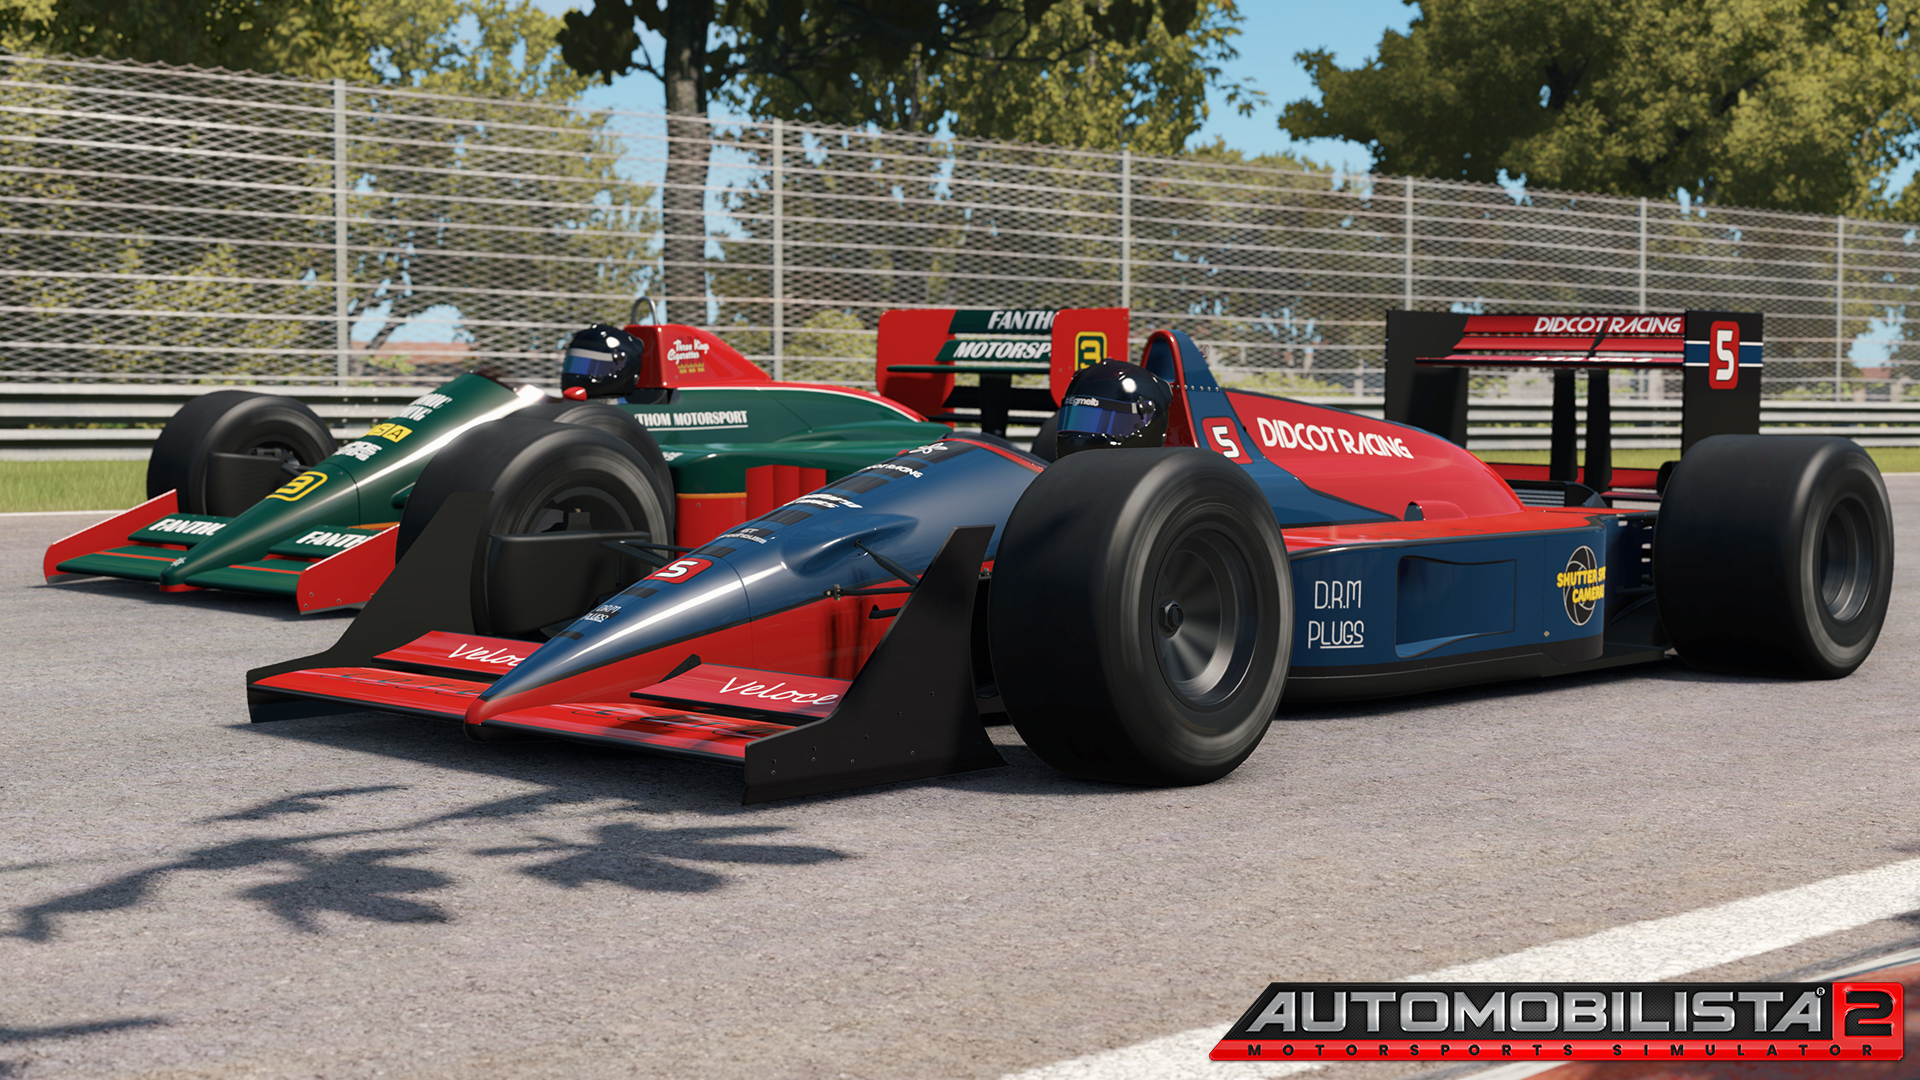 Automobilista 2 v1.0.2.0 Now Available, Adds Lotus 49C